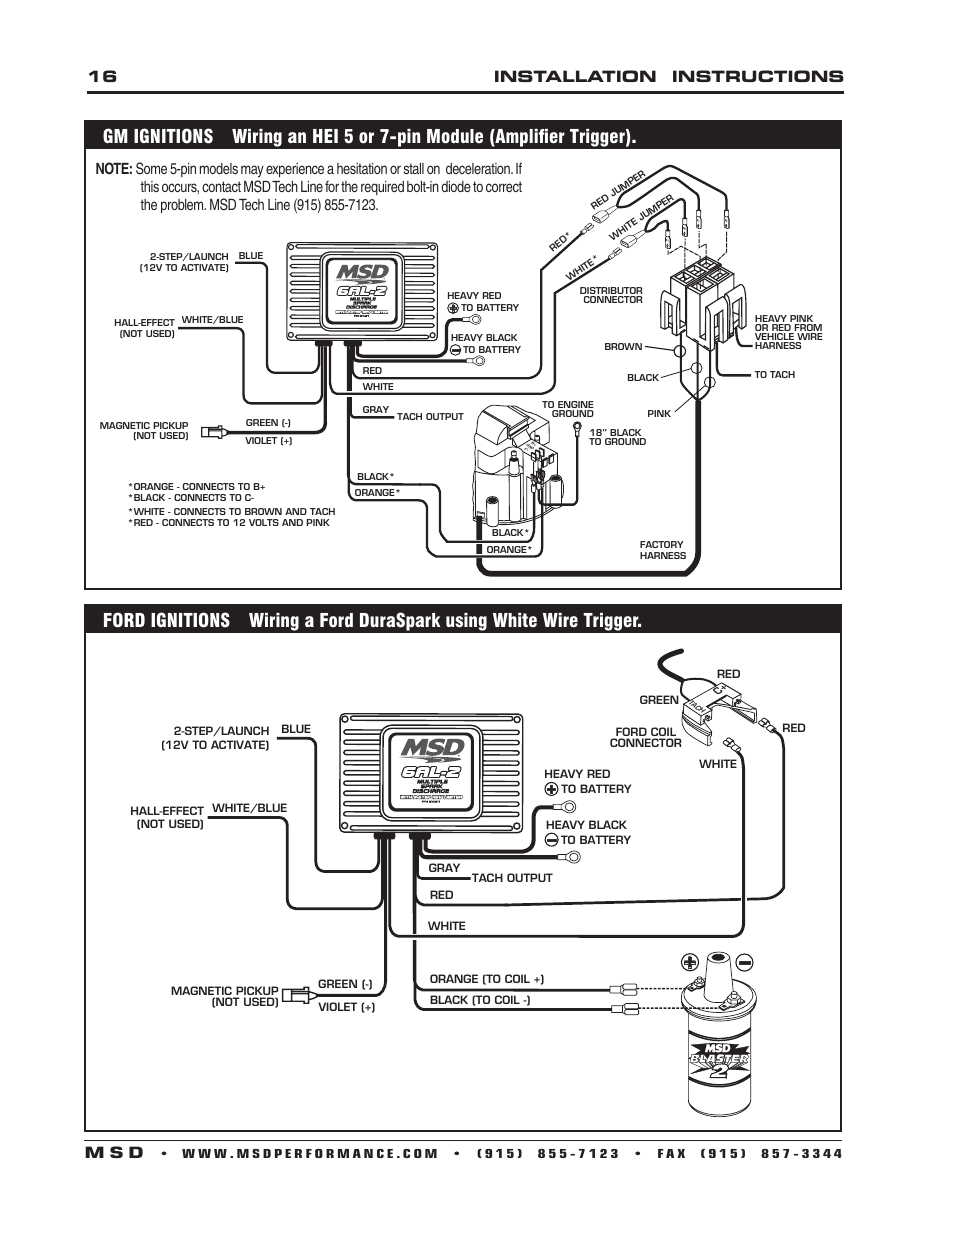 Help With Ignition Wiring Manual Guide